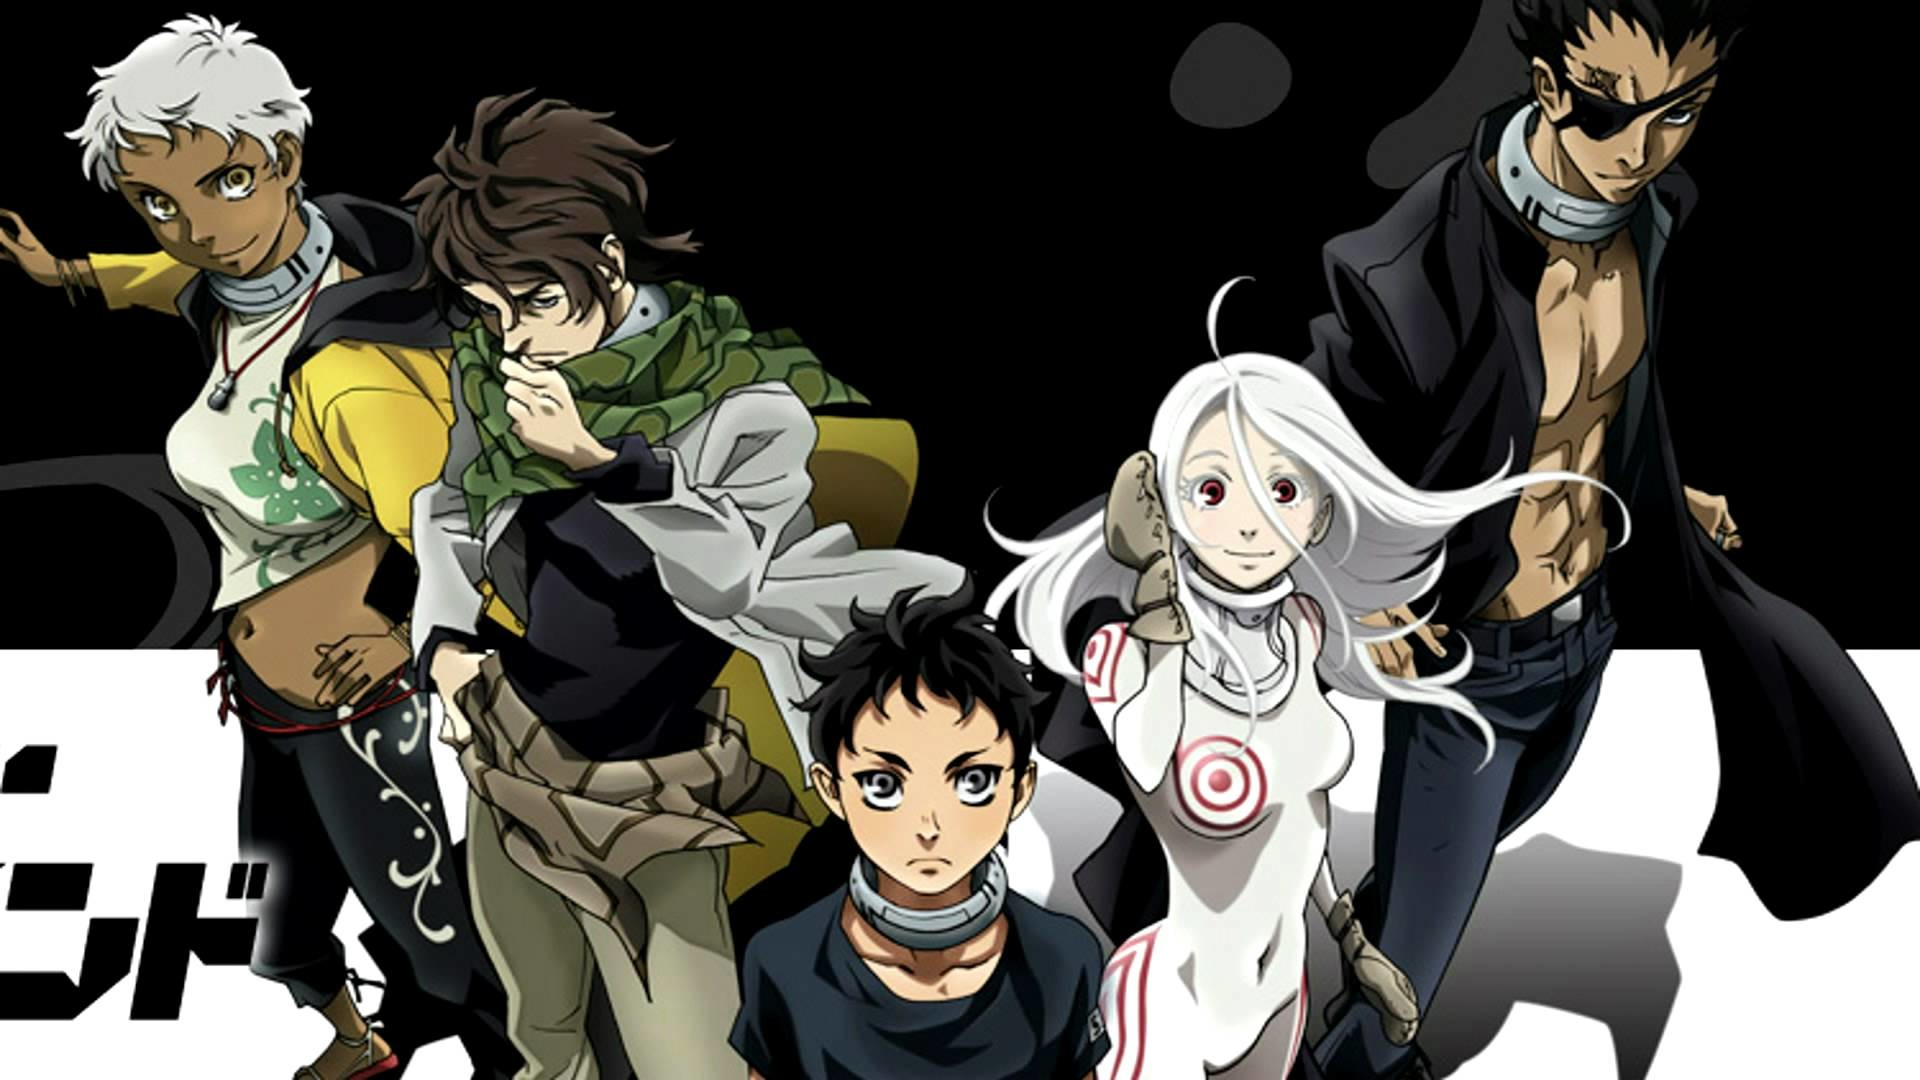 1920x1080 Deadman Wonderland HD Wallpaper